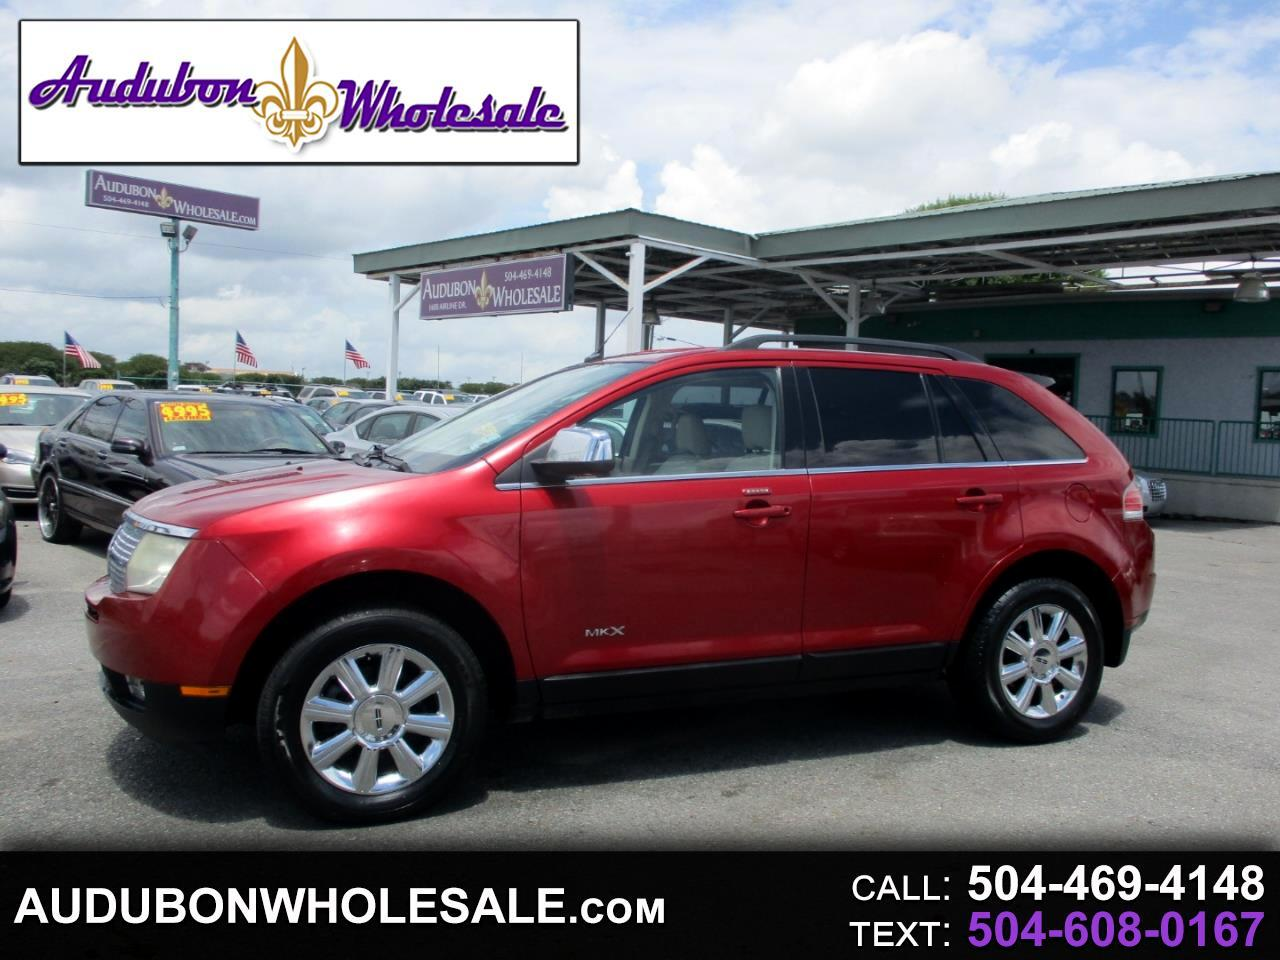 2007 Lincoln MKX FWD for sale VIN: 2LMDU68C57BJ04211